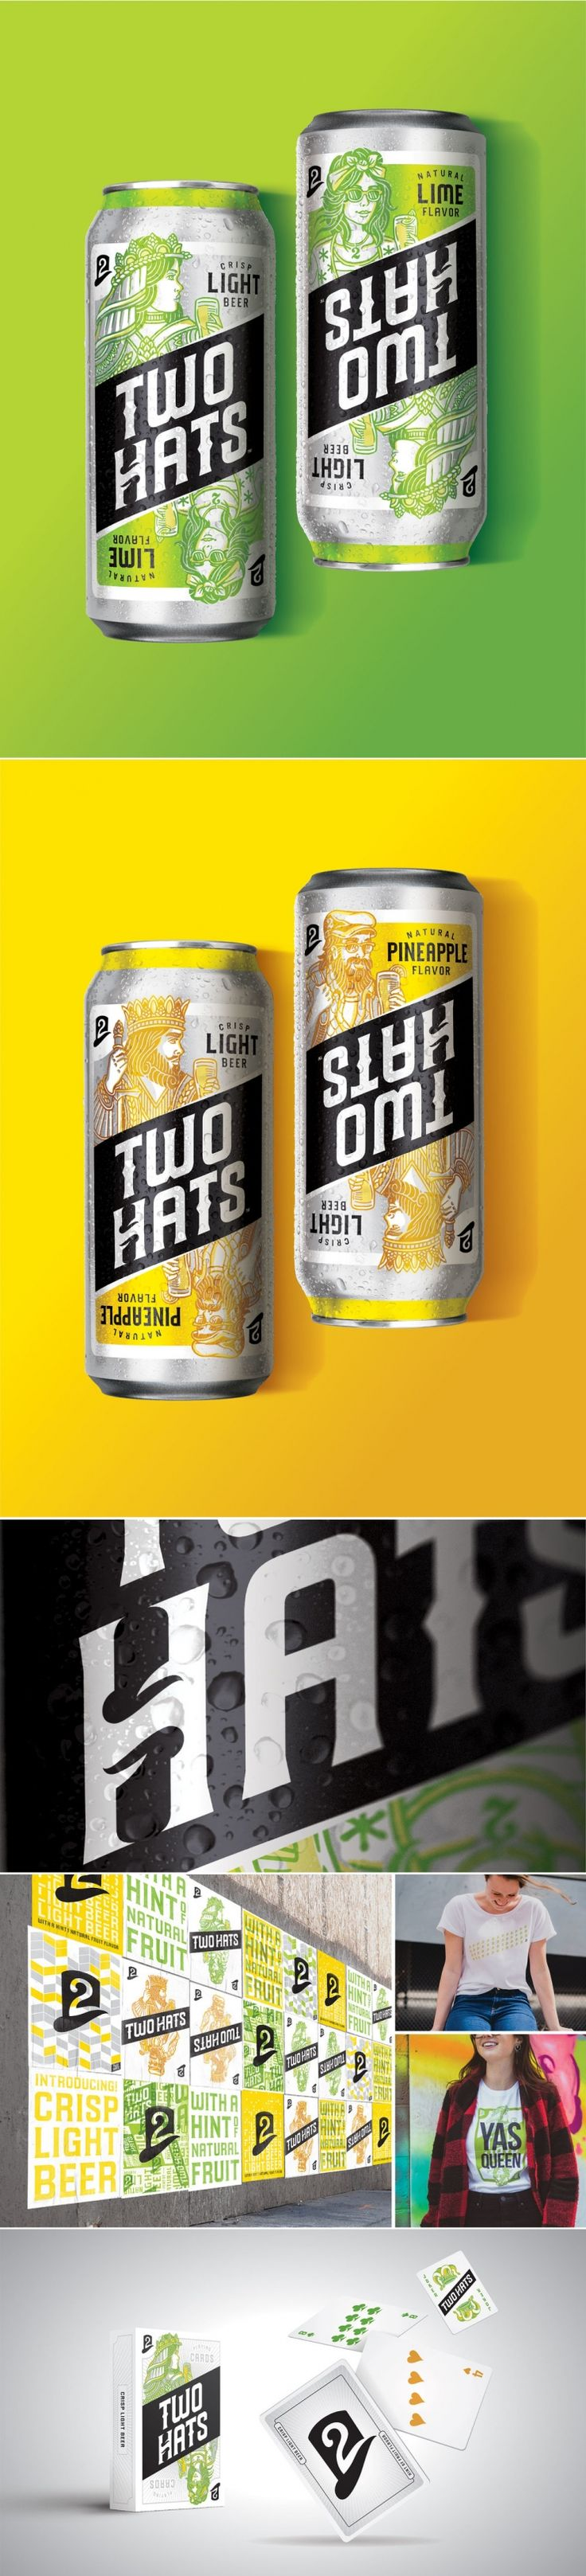 Two Hats A Brew For The New Generation